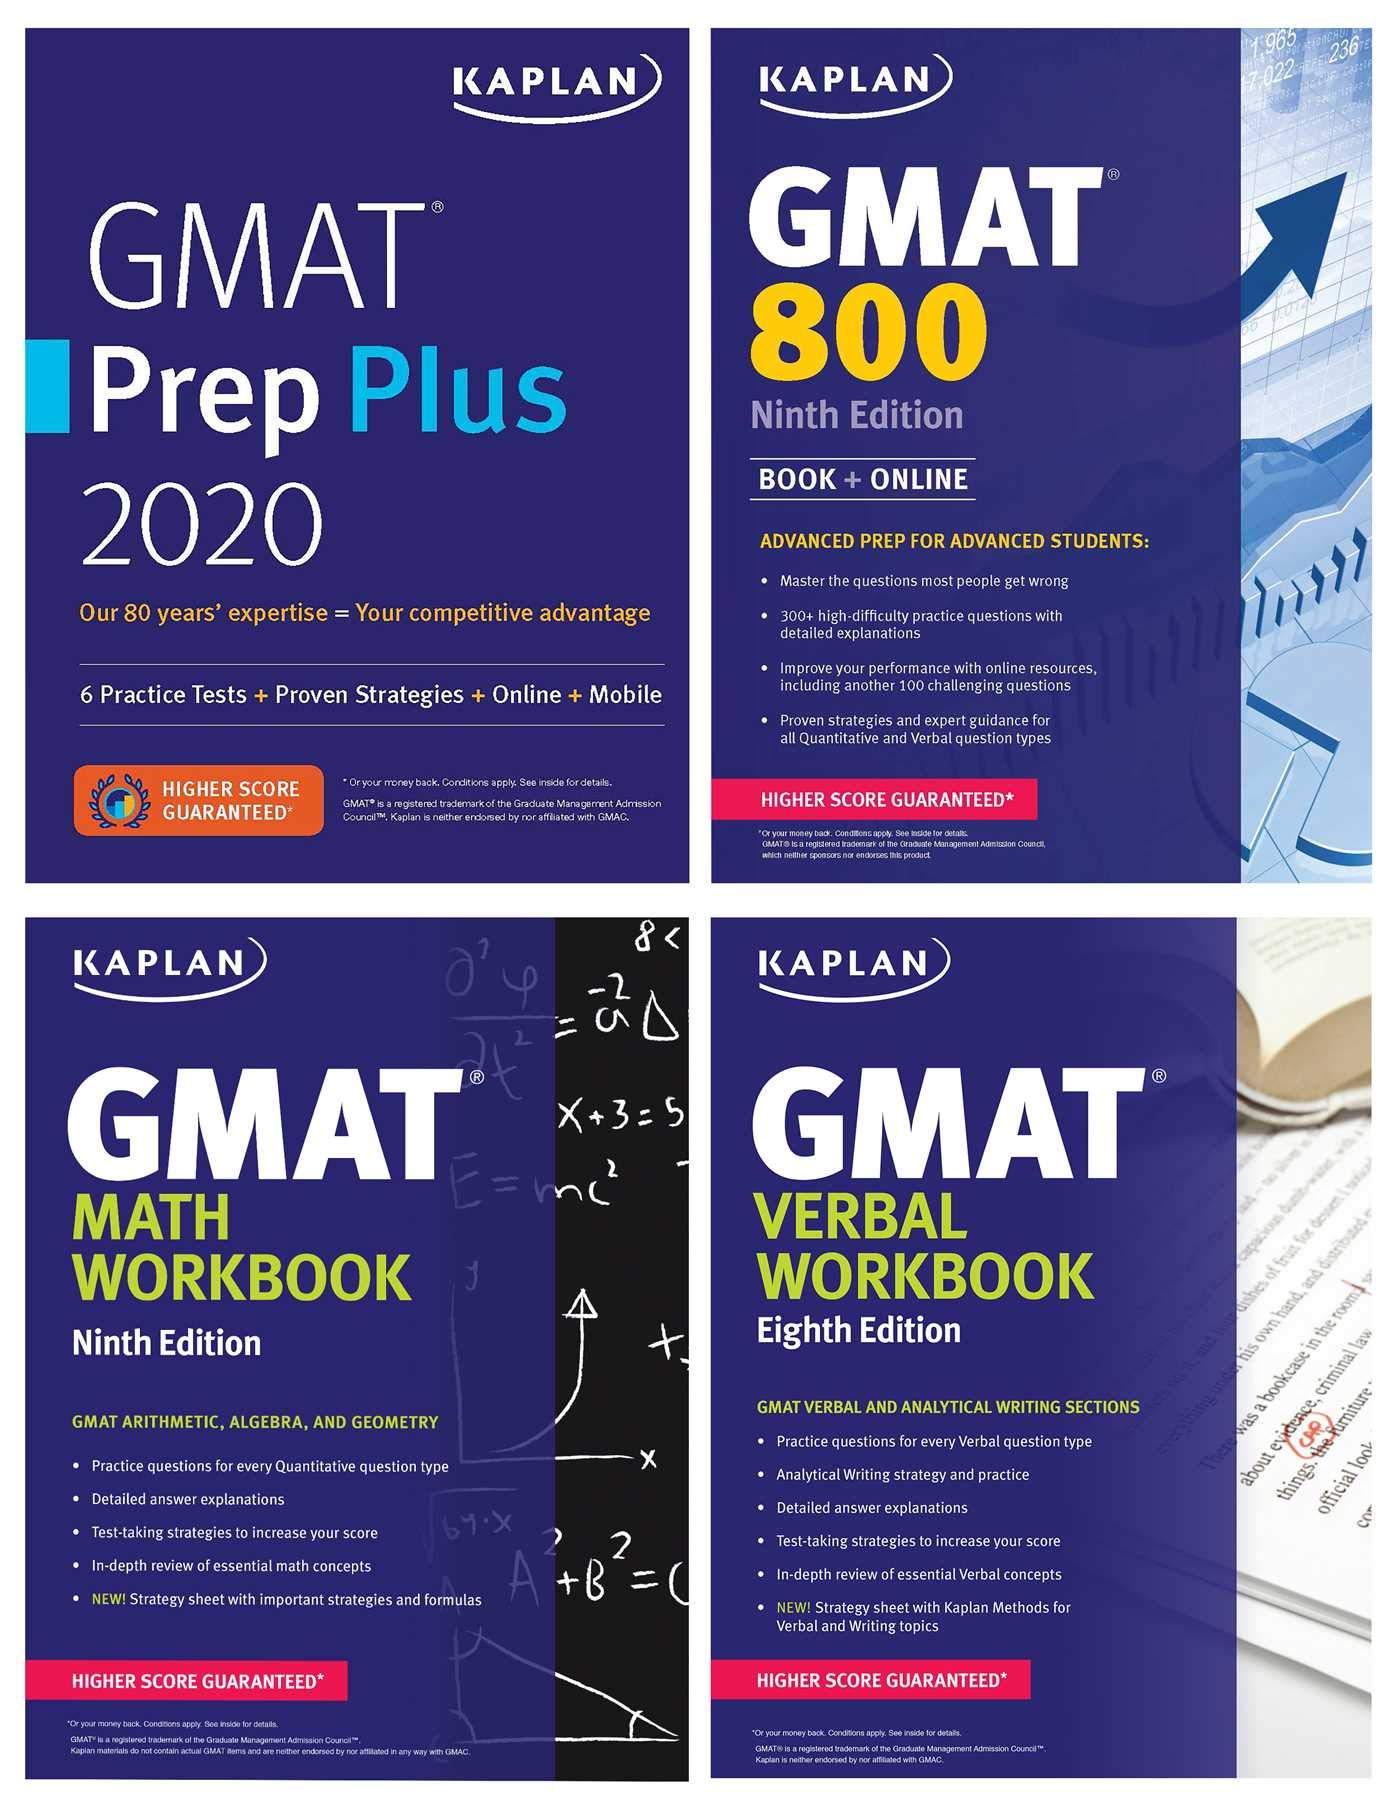 GMAT Complete 2020: The Ultimate in Comprehensive Self-Study for GMAT (Kaplan Test Prep) by Kaplan Publishing